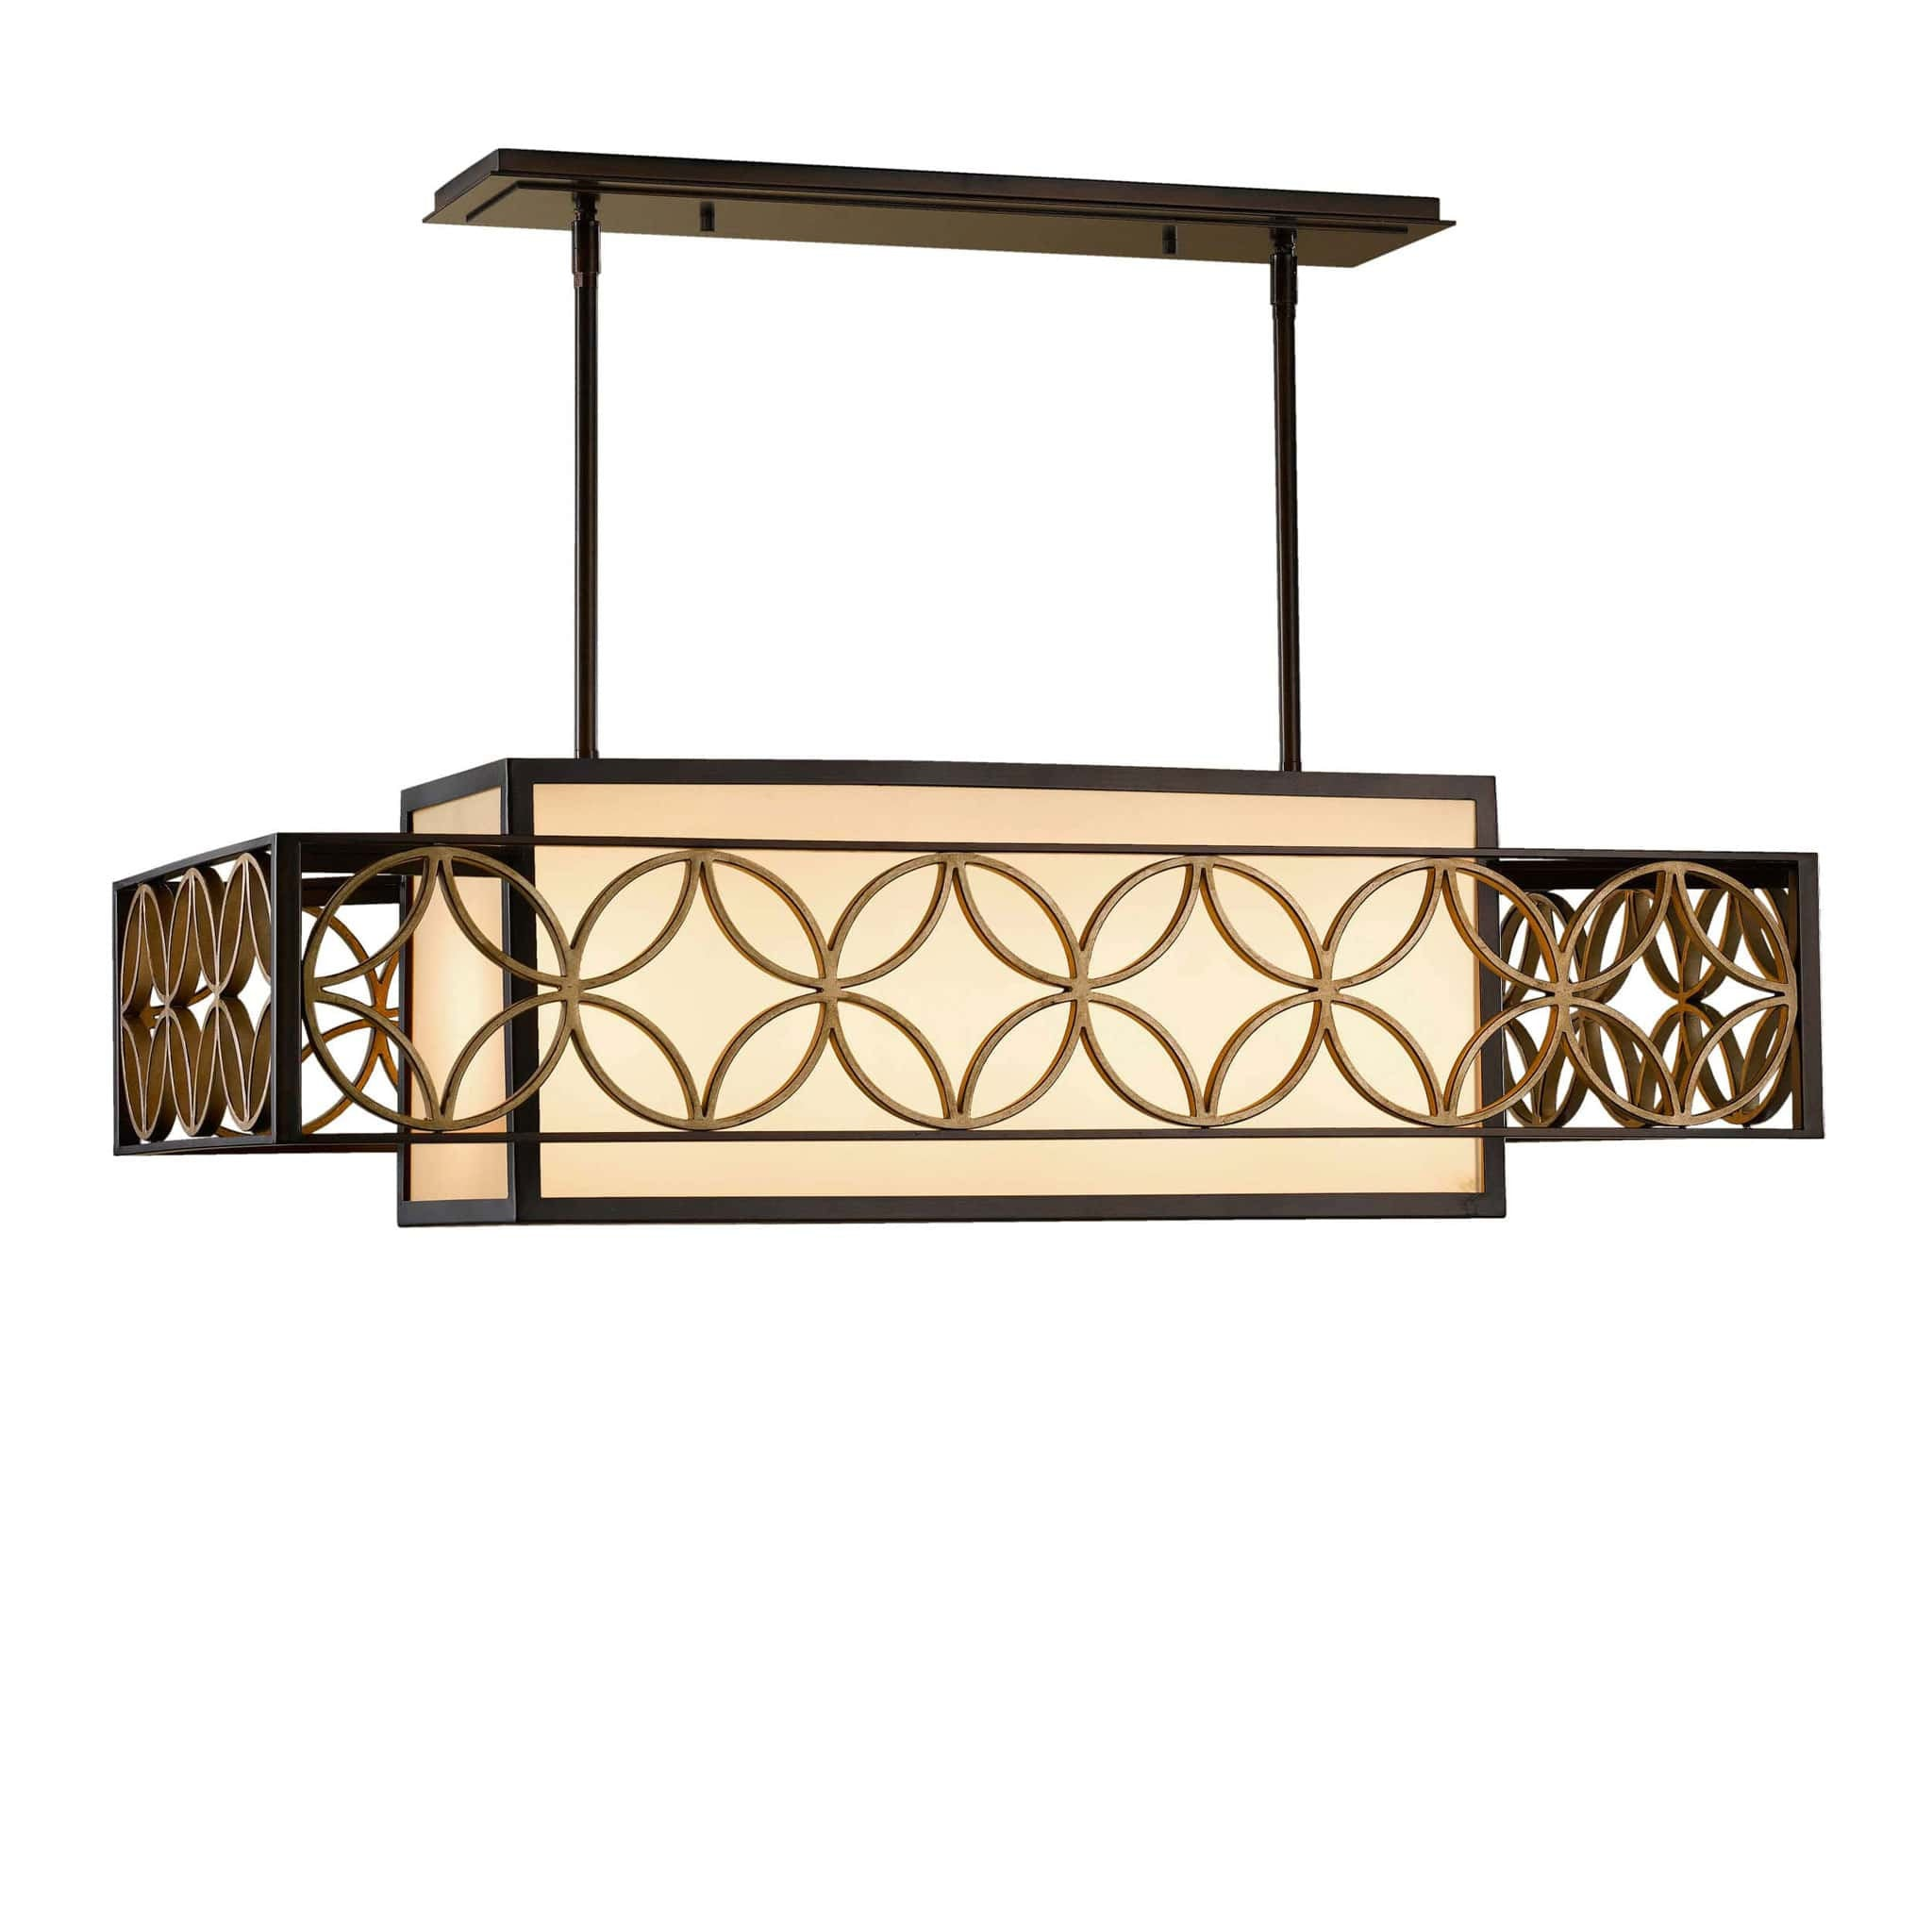 light hands rectangular lighting four dabs by rectangle chandelier fixture icam jaxon